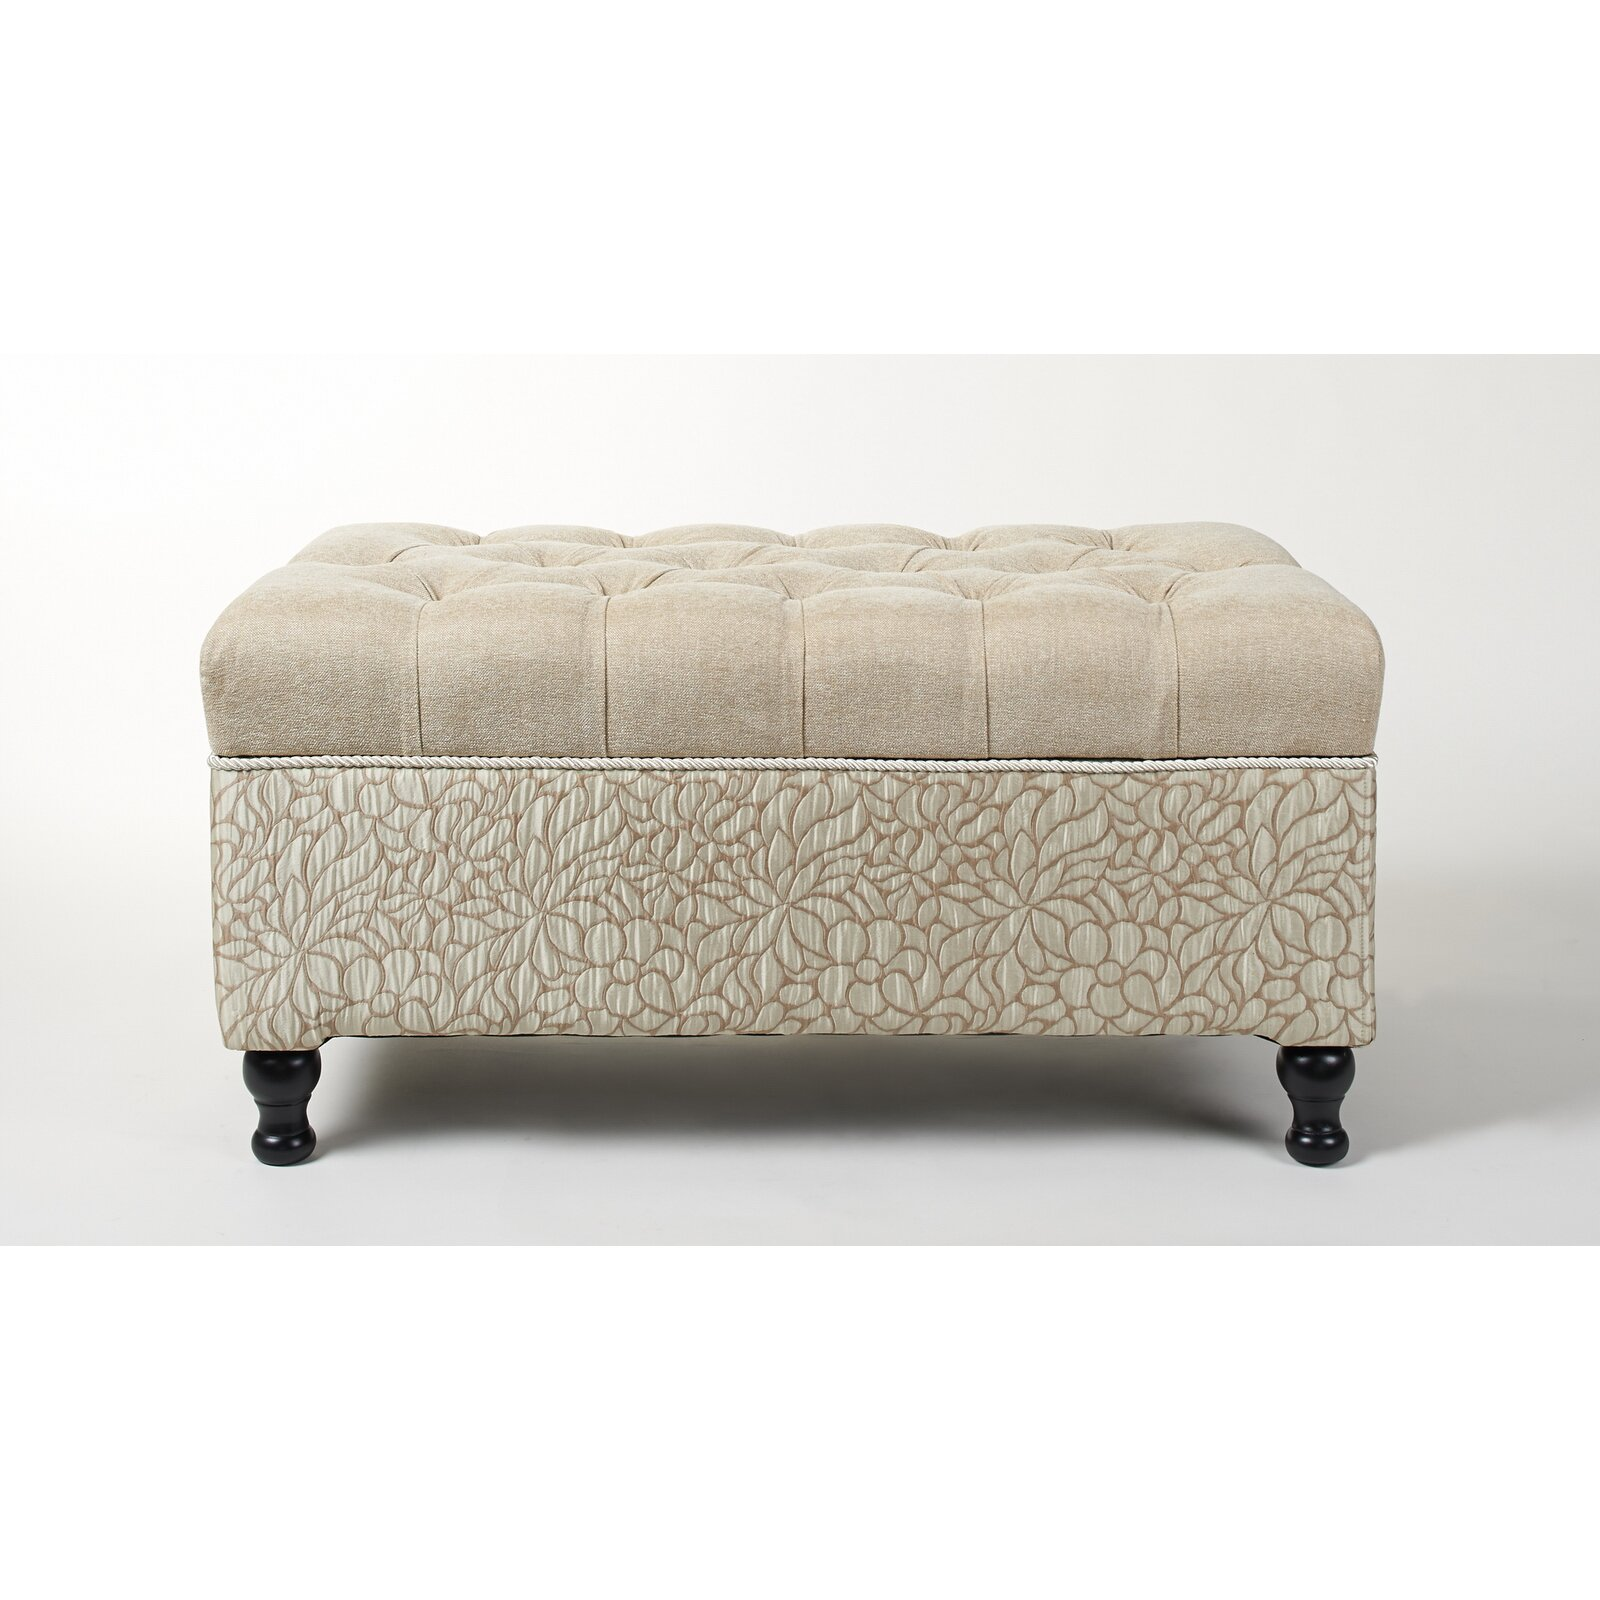 Jennifer taylor naomi upholstered storage bedroom bench reviews wayfair Bedroom storage bench